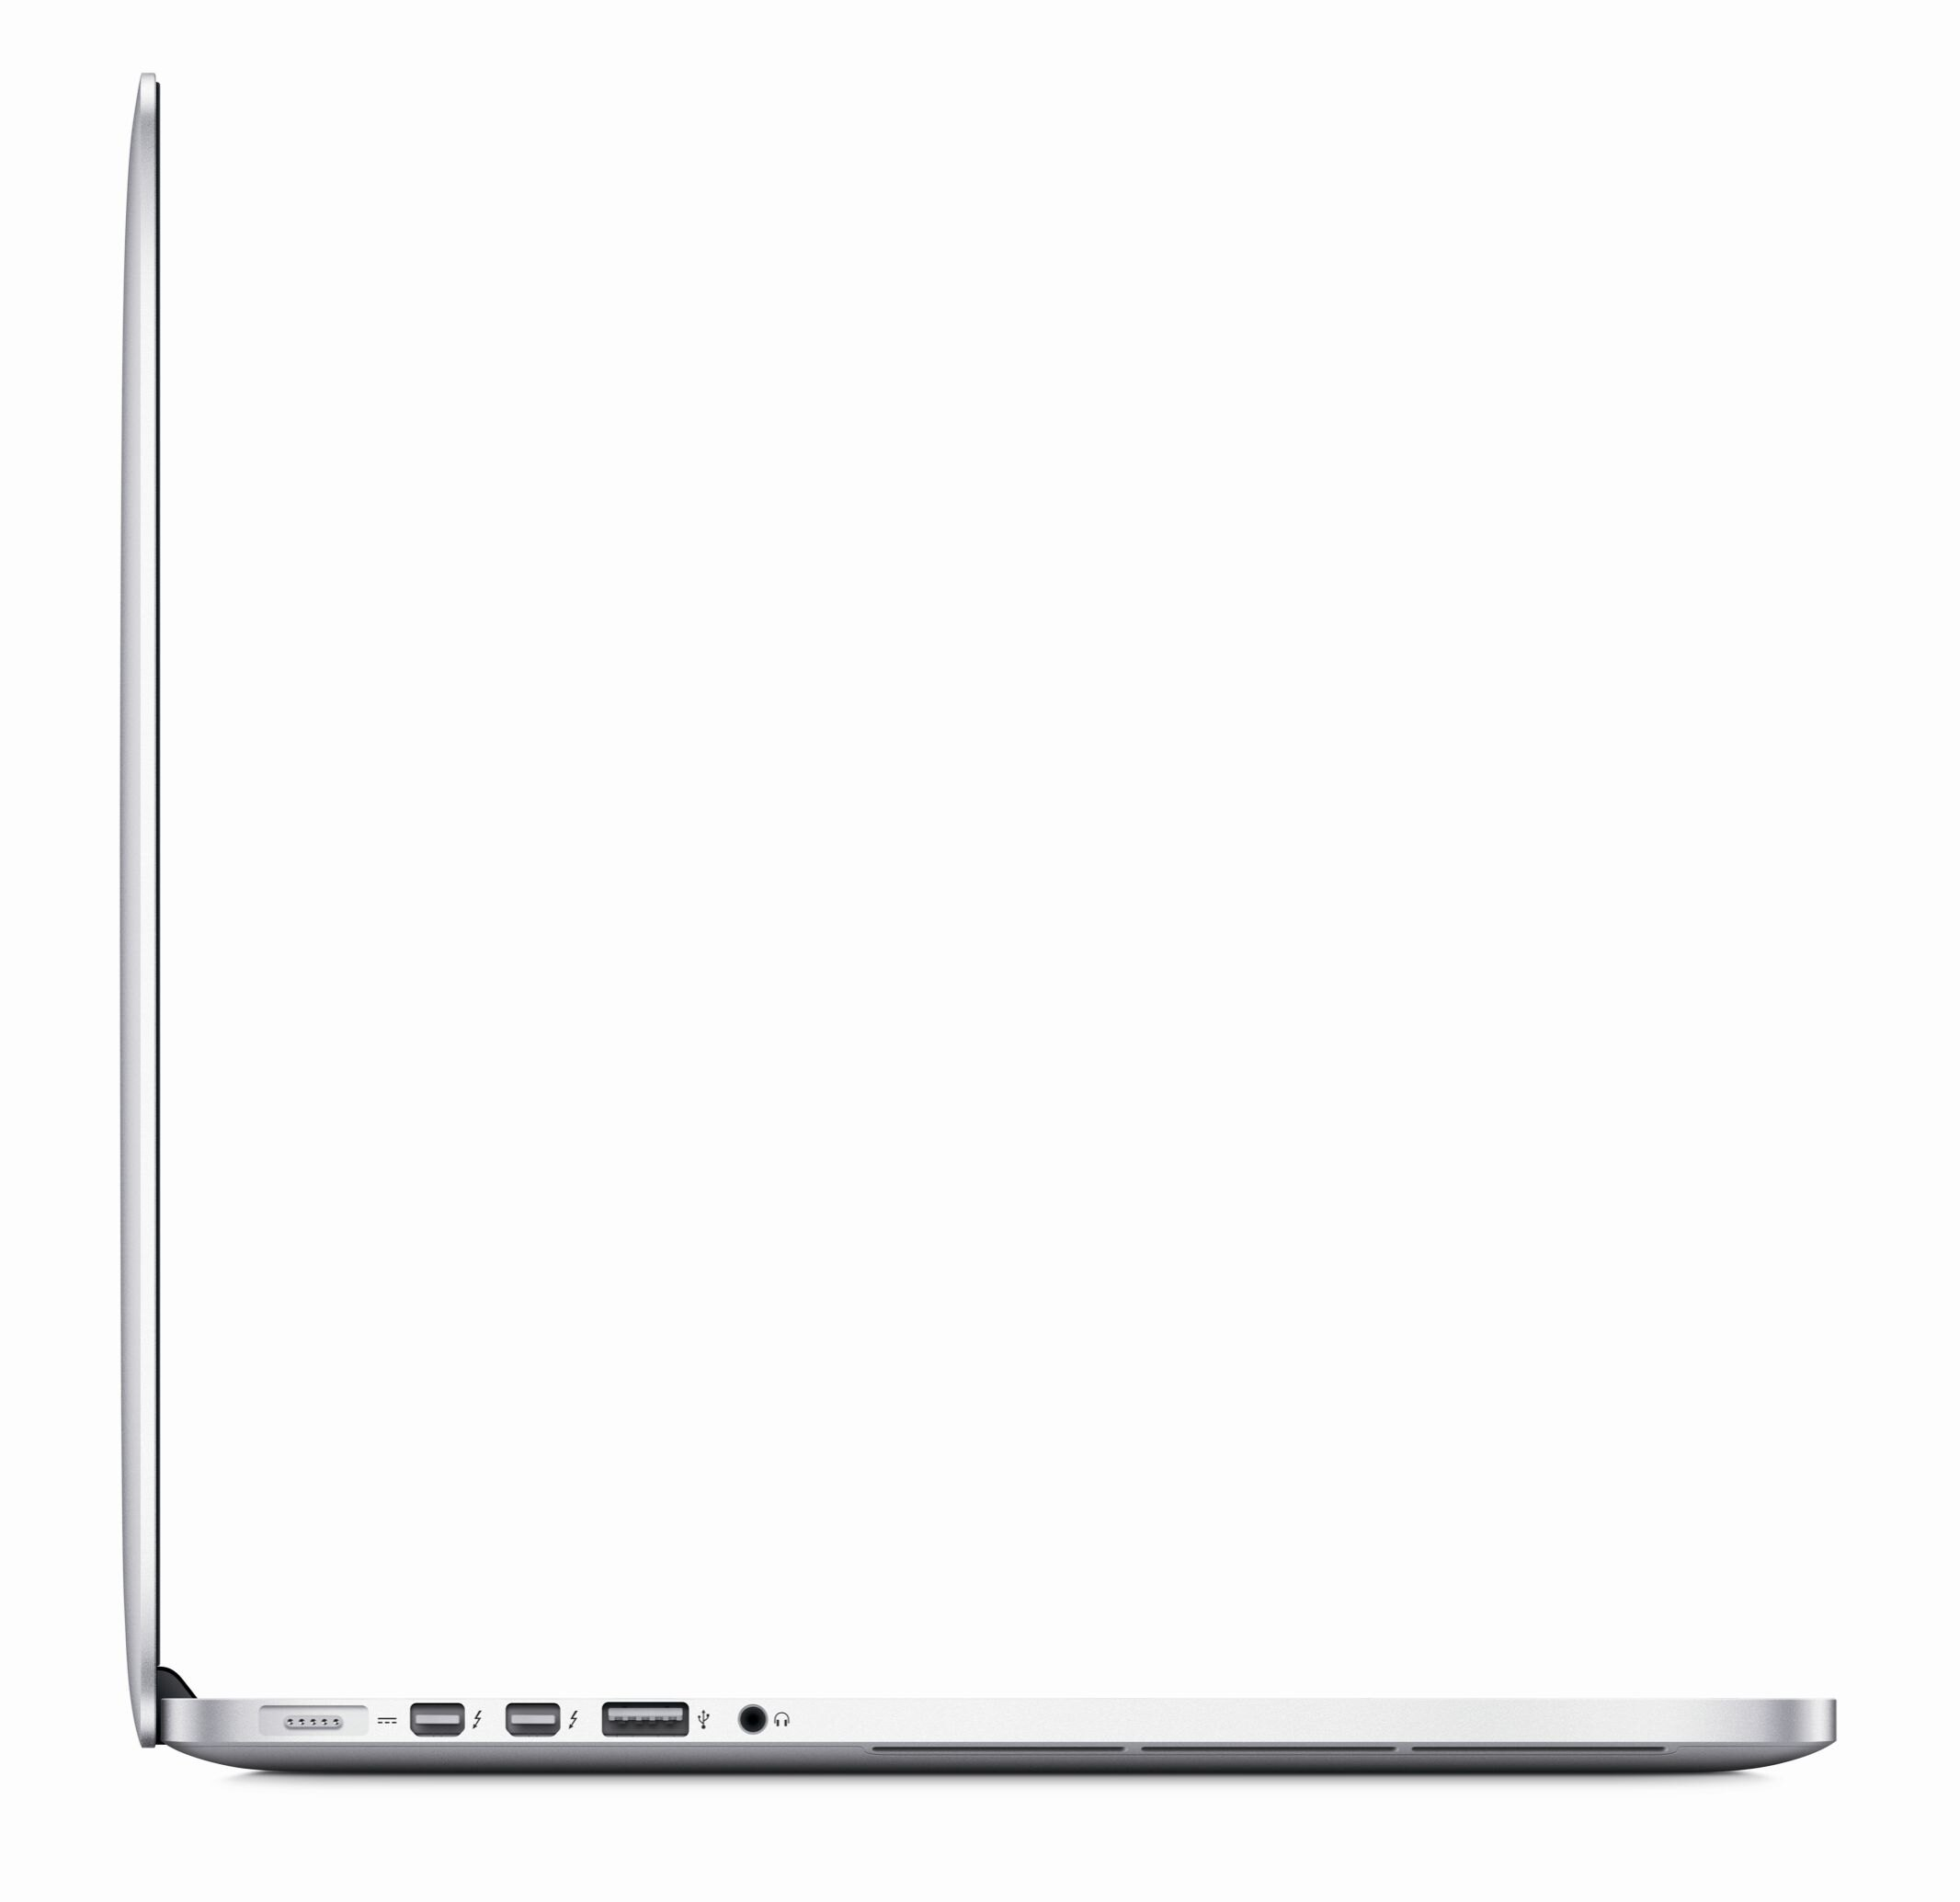 GainSaver: Refurbished Apple A Grade Macbook Pro 13.3-inch